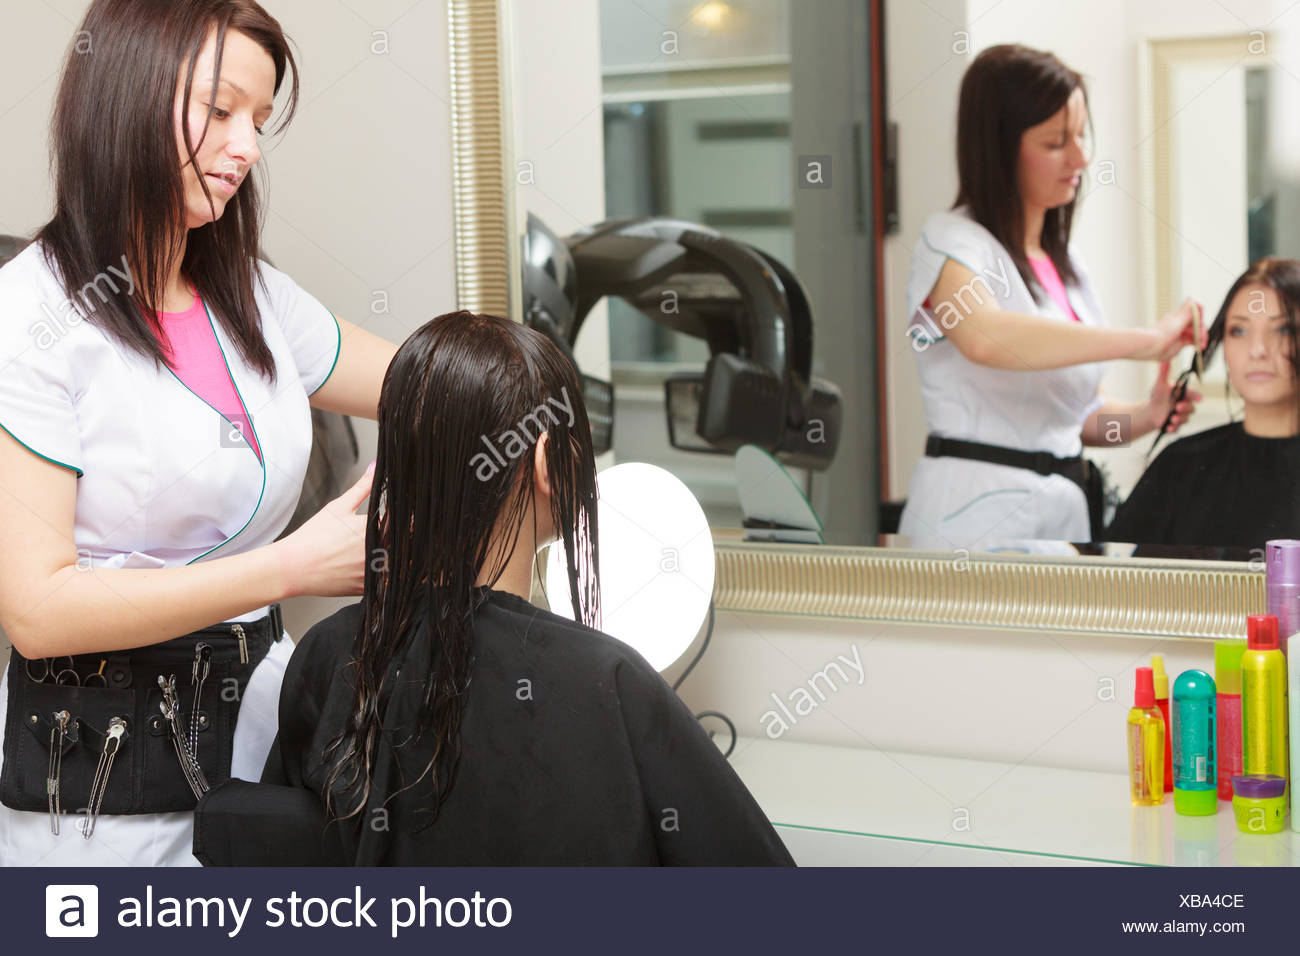 Salon Ce Hairstylist Combing Hair Woman Client In Hairdressing Beauty Salon